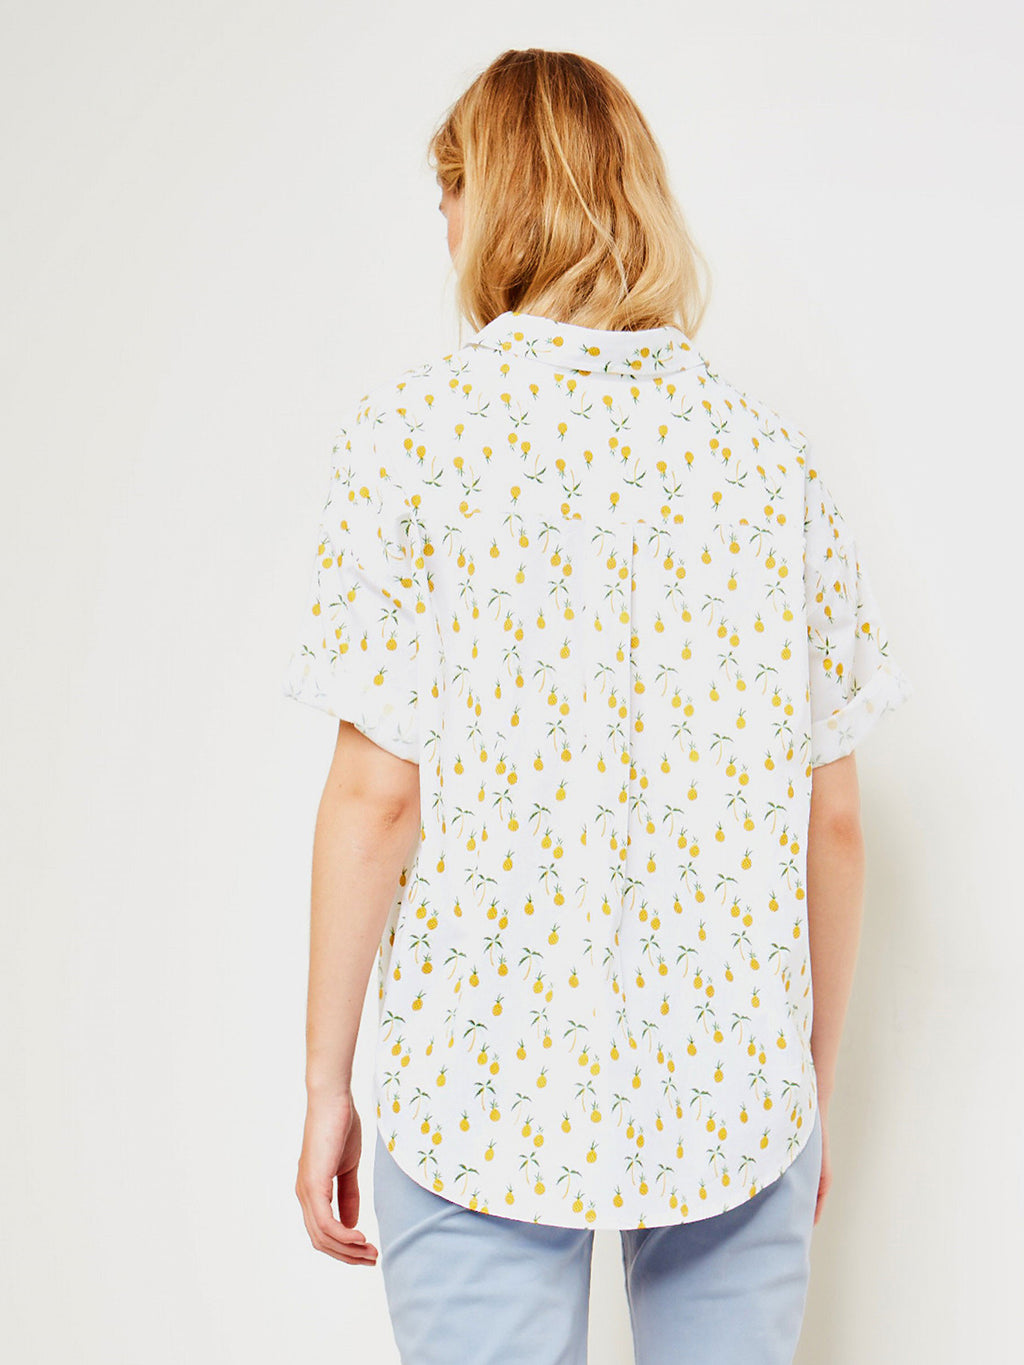 Buy Cleo Printed Shirt from REIKO at paya boutique